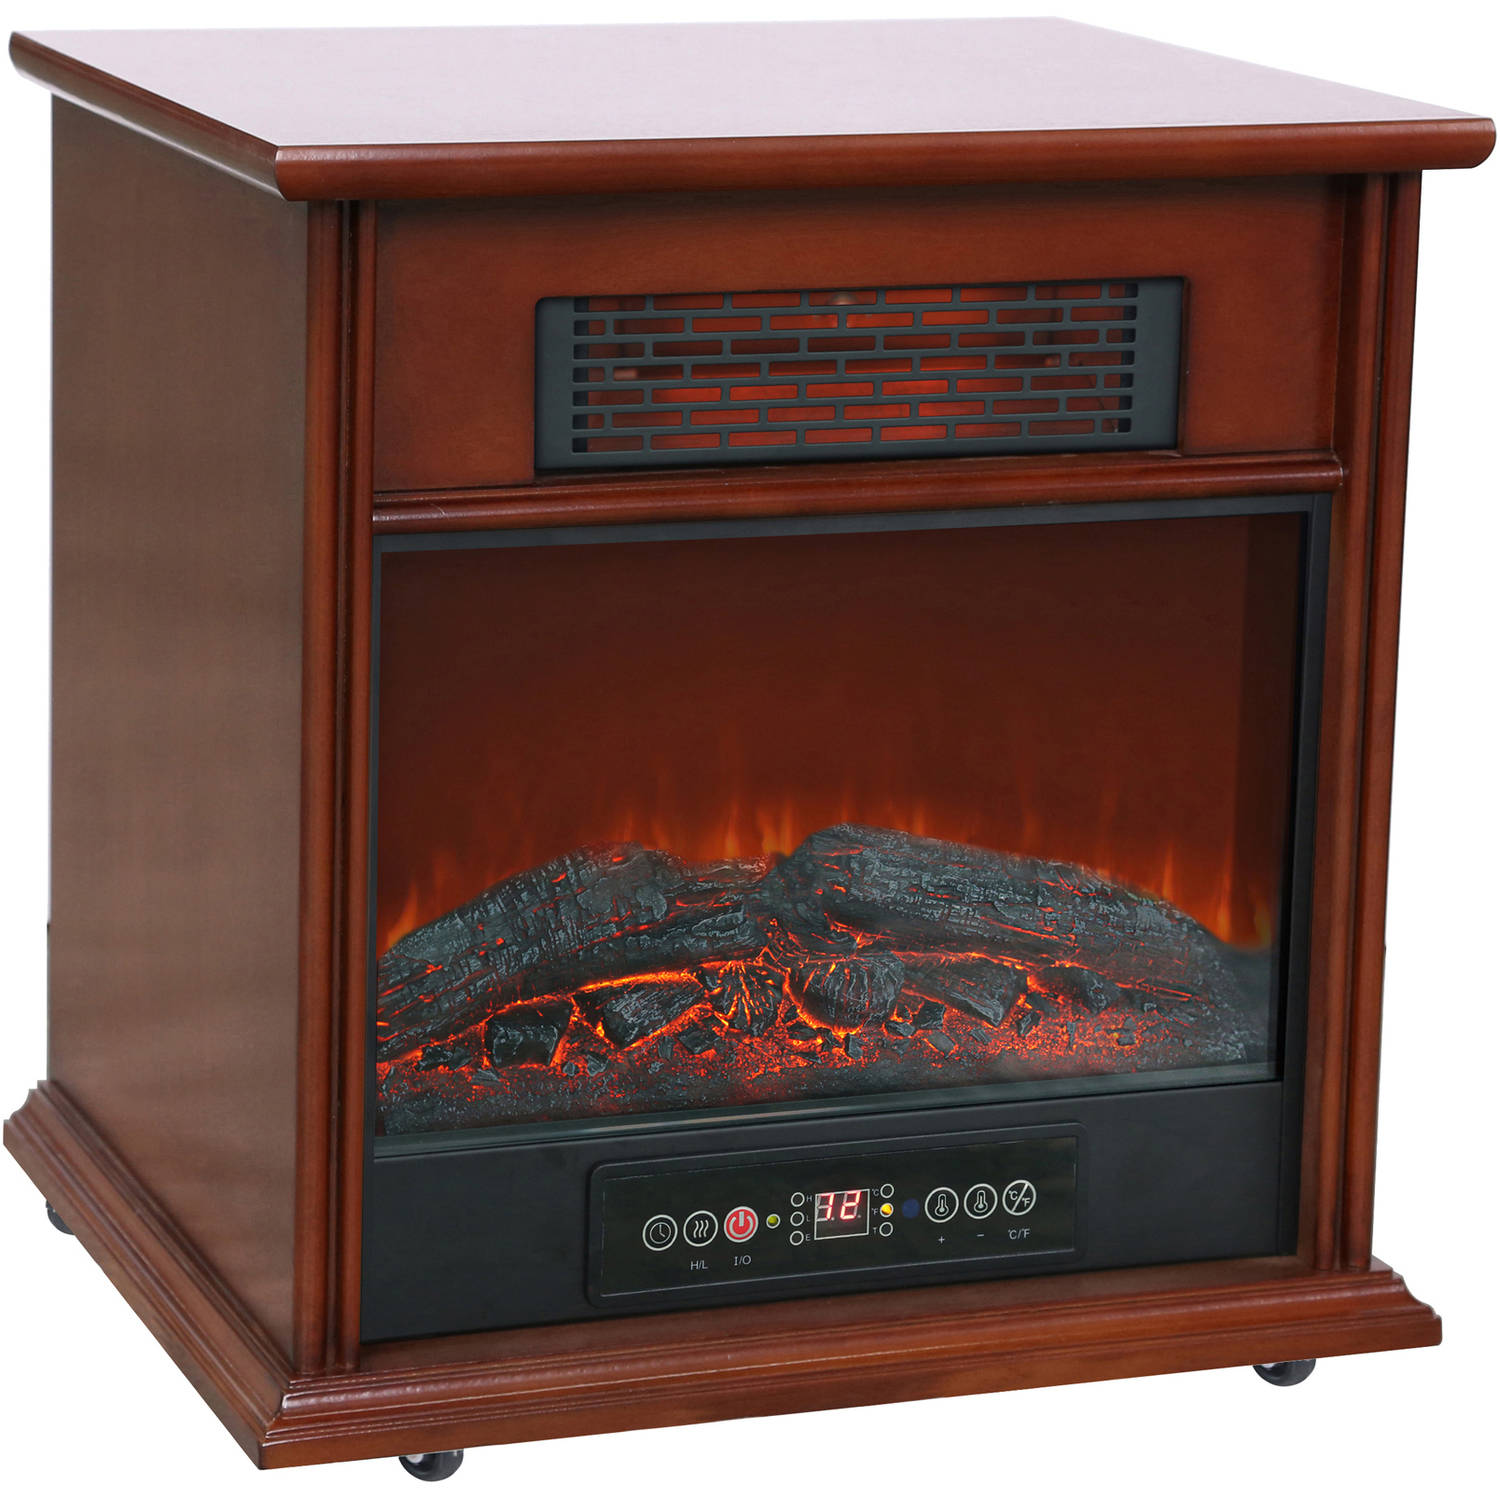 1500W Hearth Trends Infrared Electric Fireplace